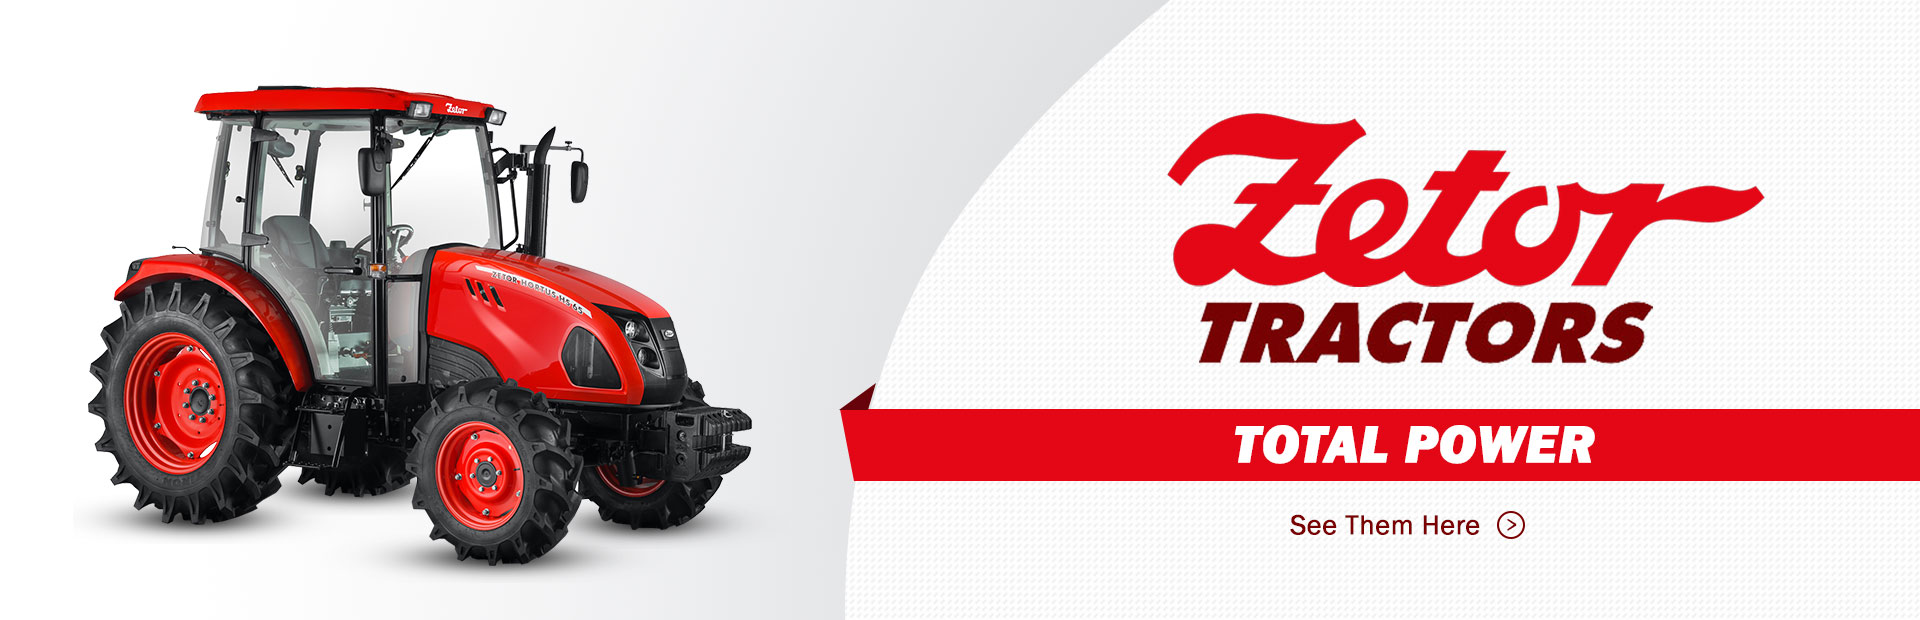 Zetor Tractors: Click here to view the lineup.